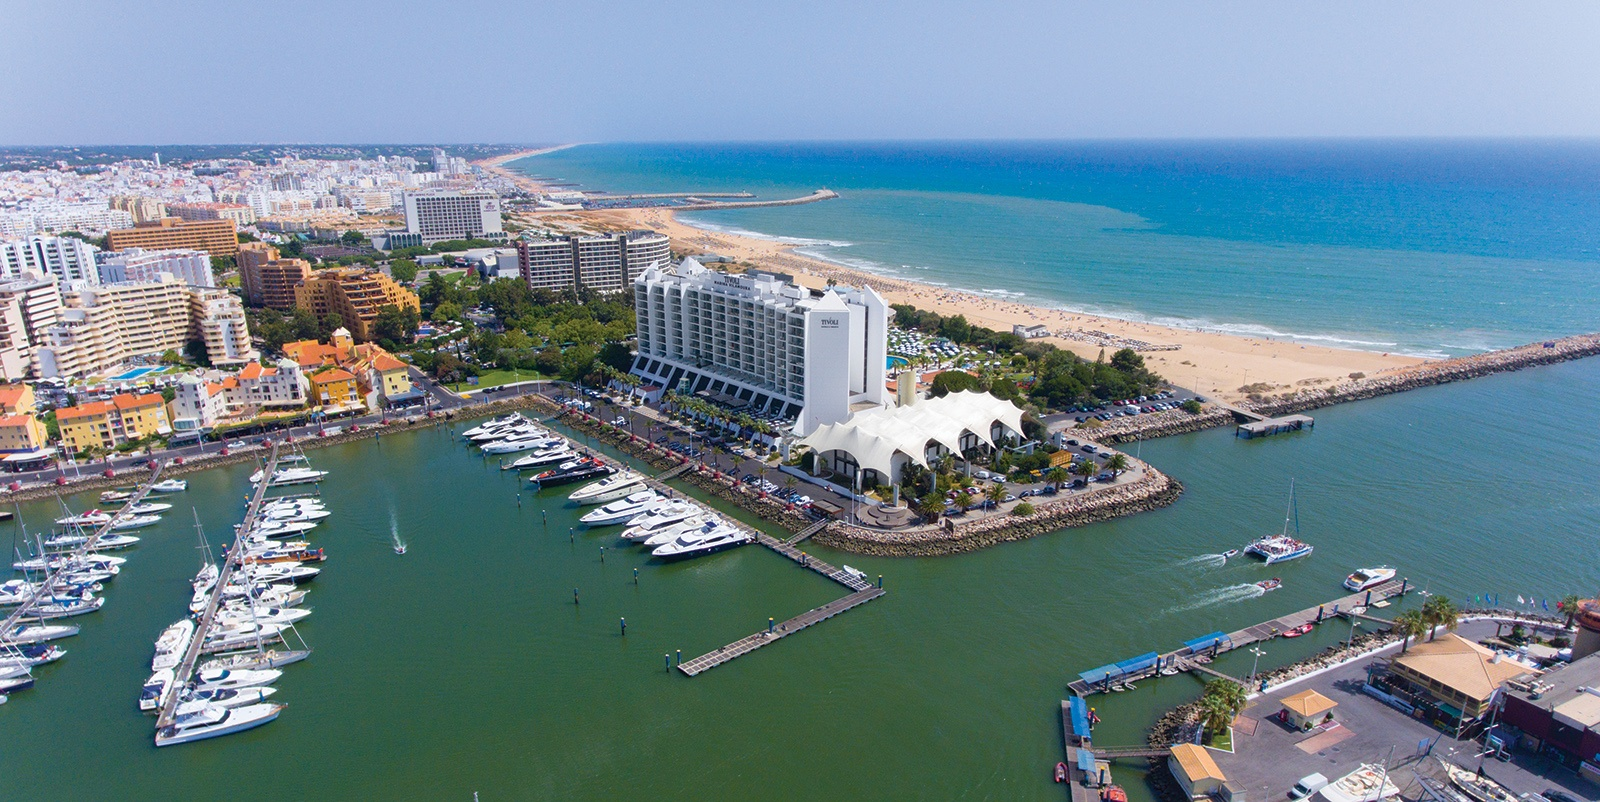 Tivoli Hotels In The Algarve Tivoli Marina Vilamoura Luxury 5 Hotel Algarve Condé